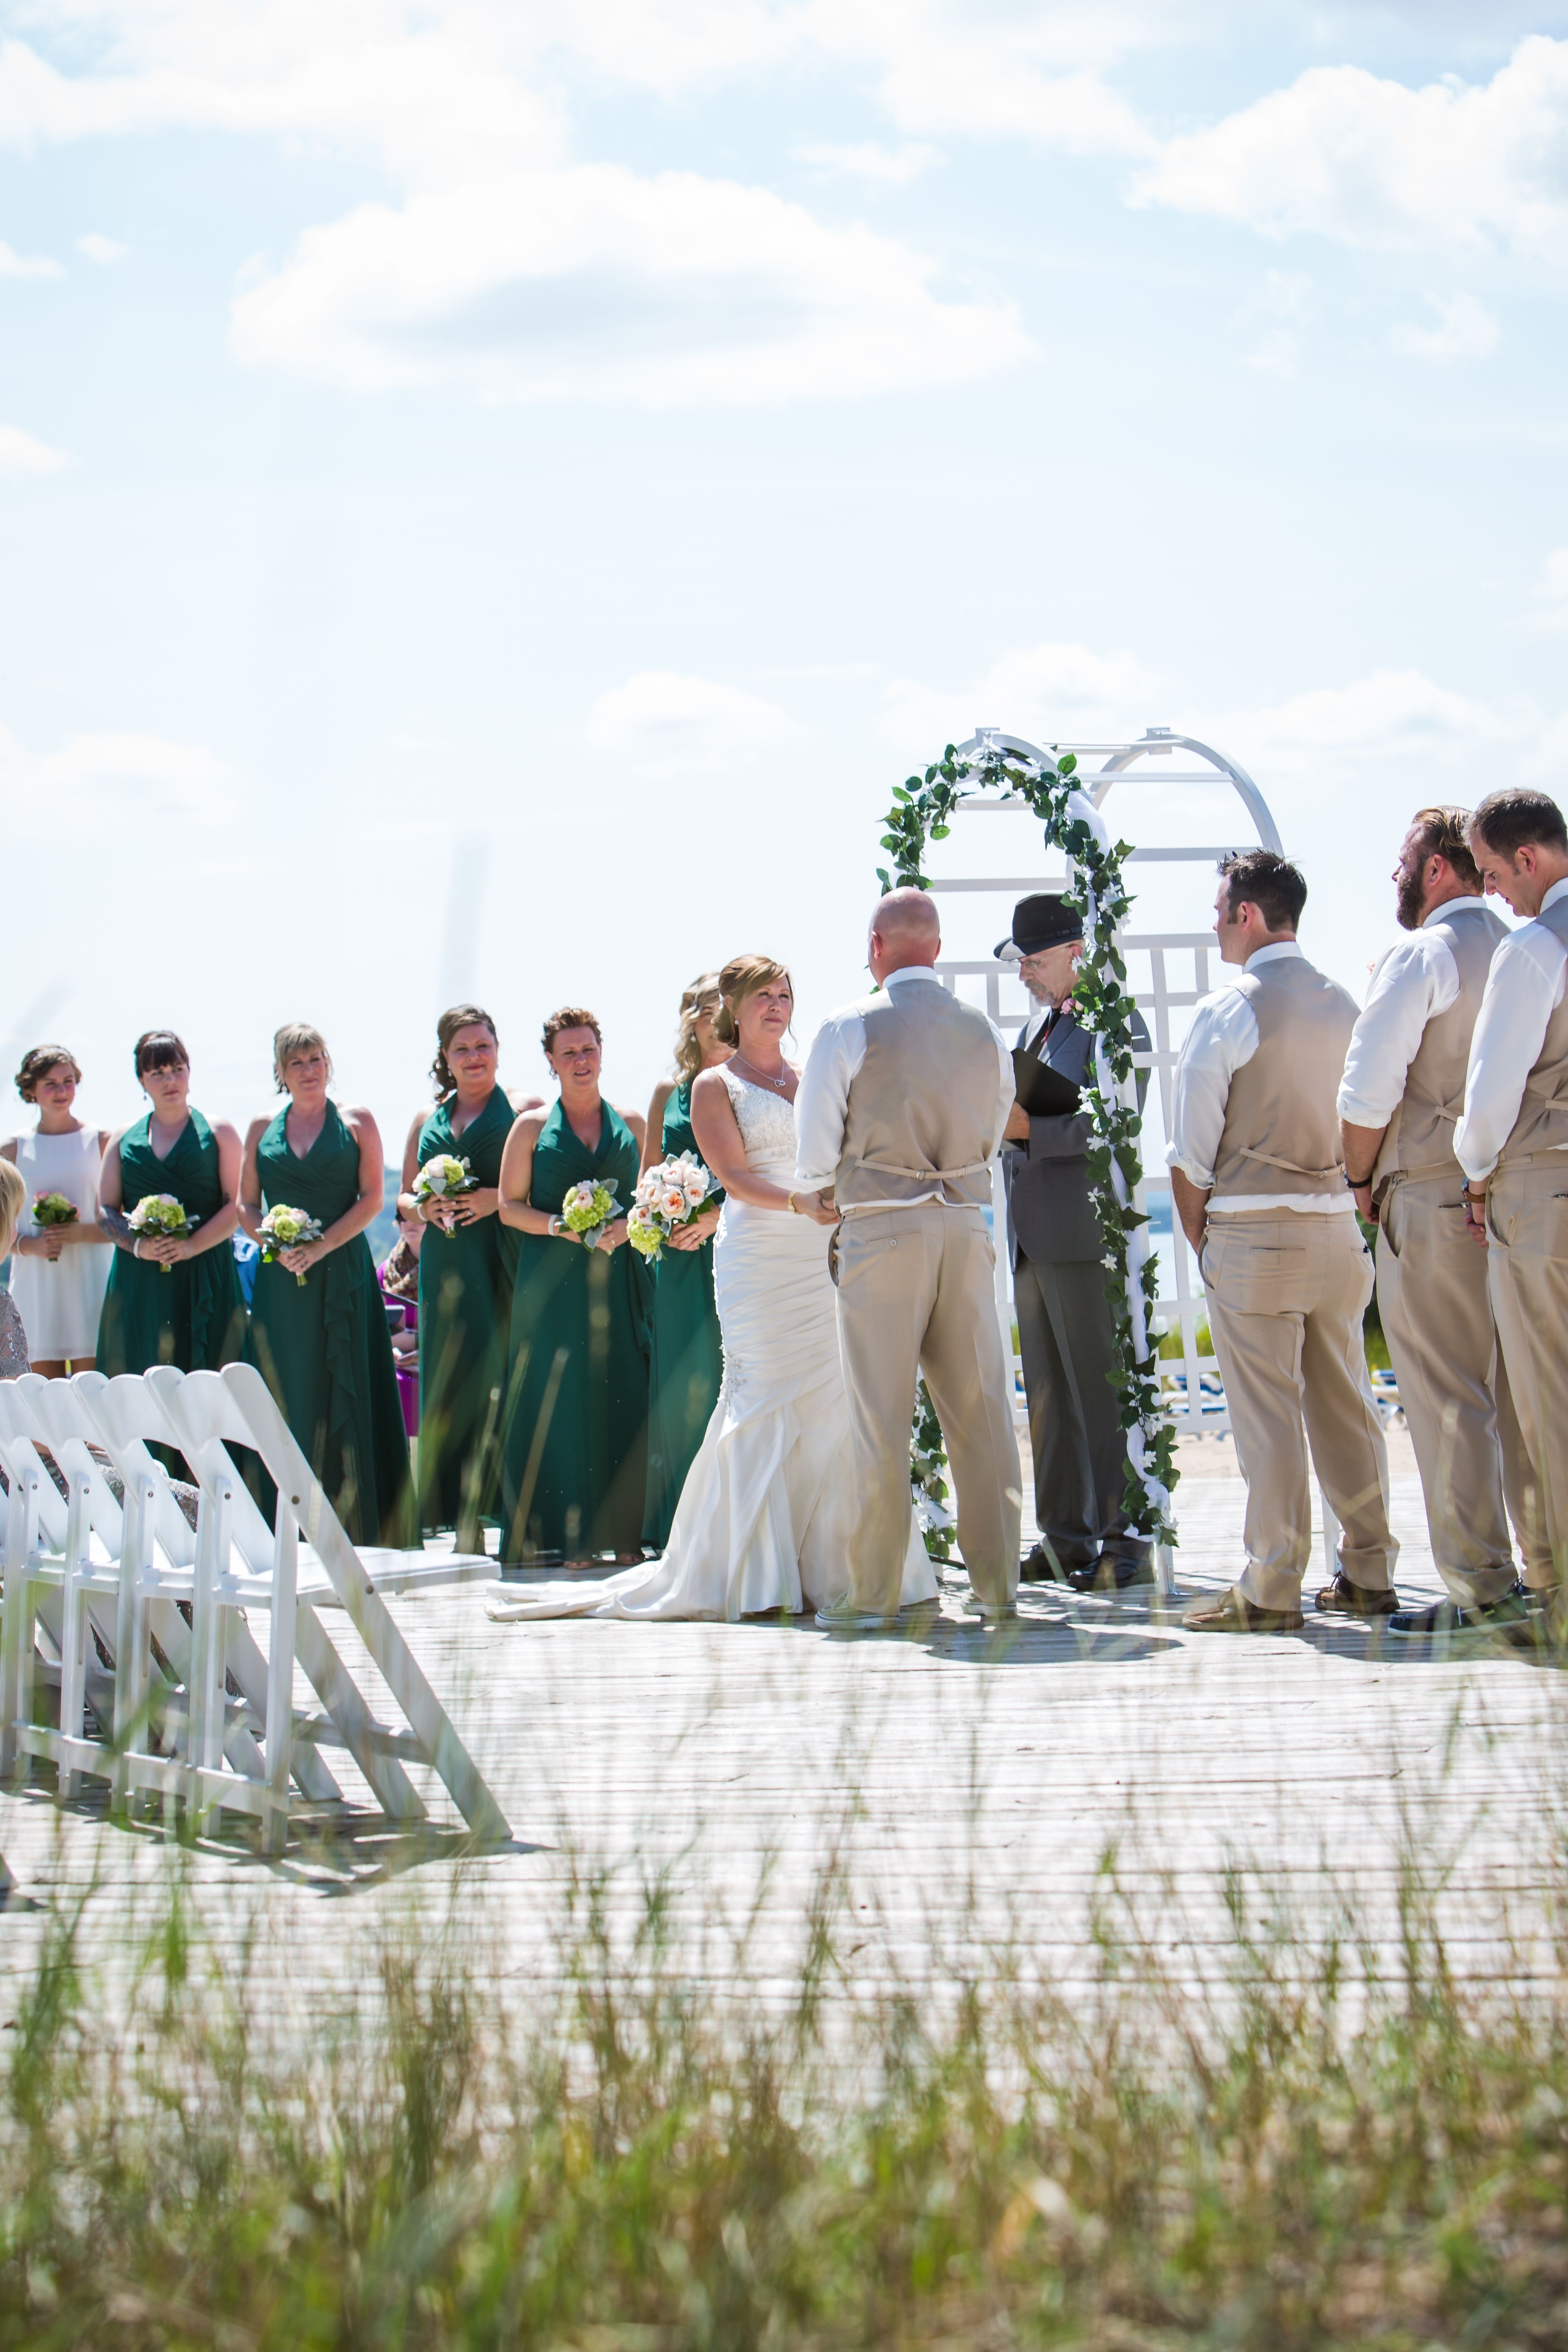 Beach Wedding On East Bay At Grand Traverse Resort And Spa I Believe That S Rev Kelly Of Nmwo Officiating